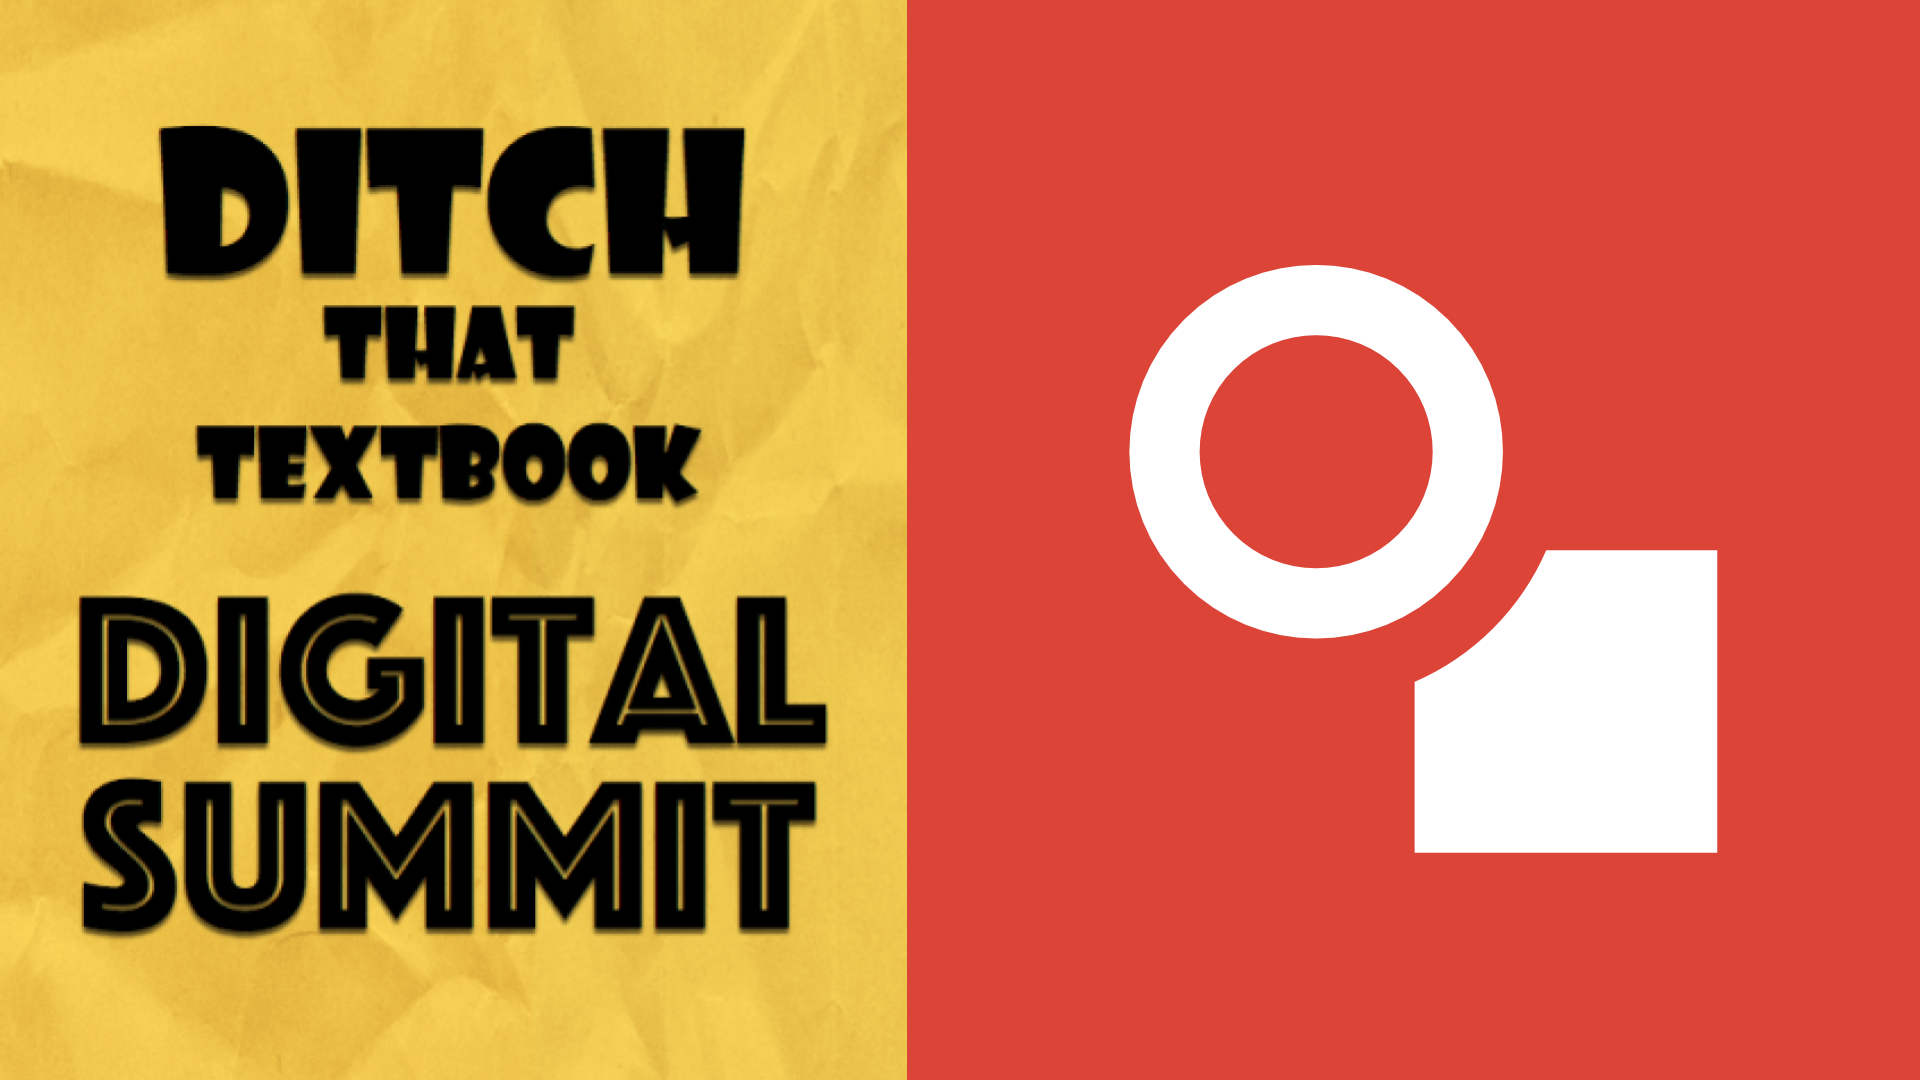 Ditch That Textbook Digital Summit